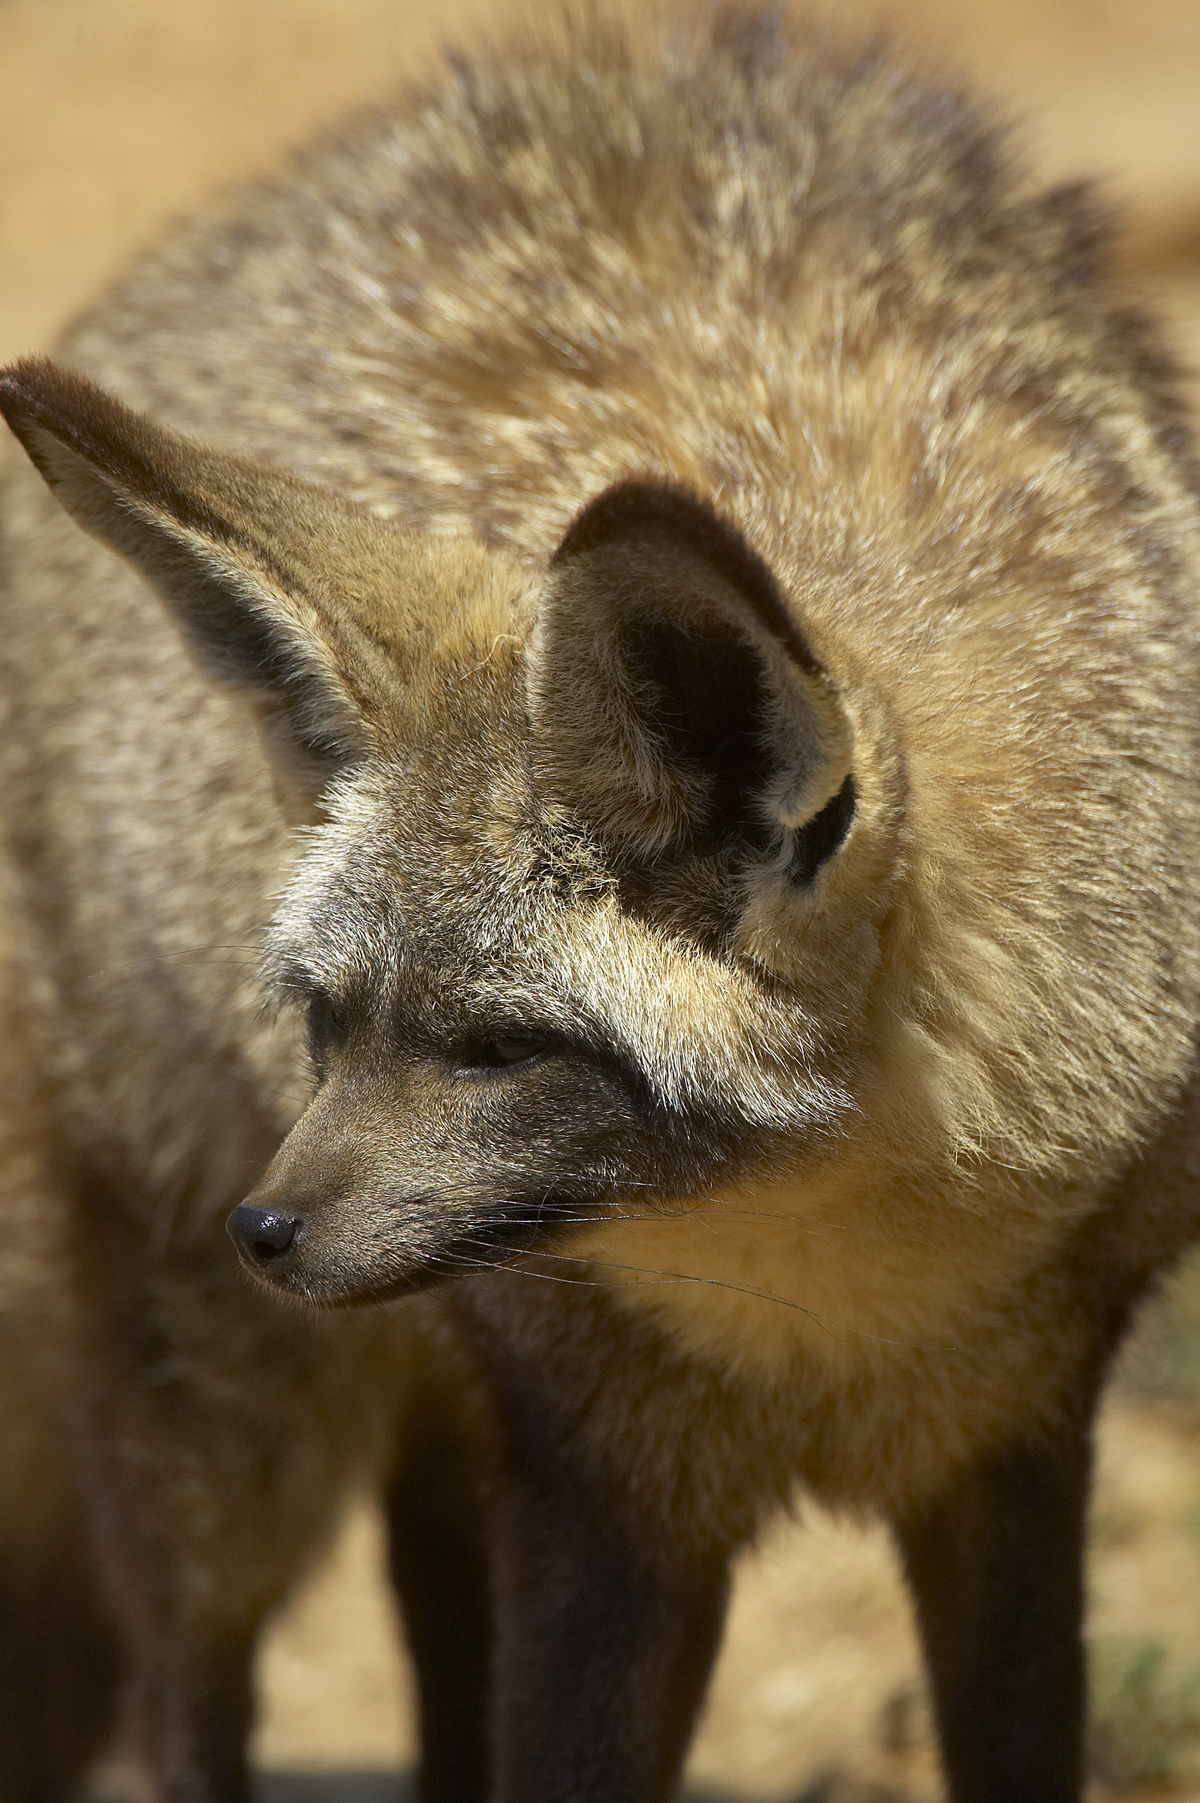 The bat-eared fox is also known for its colossal ears, which are over five inches tall. Like its fennec counterpart, the ears on a bat-eared fox are full of blood vessels that shed heat and keep the animal cool. Those big ears also give them an excellent sense of hearing.